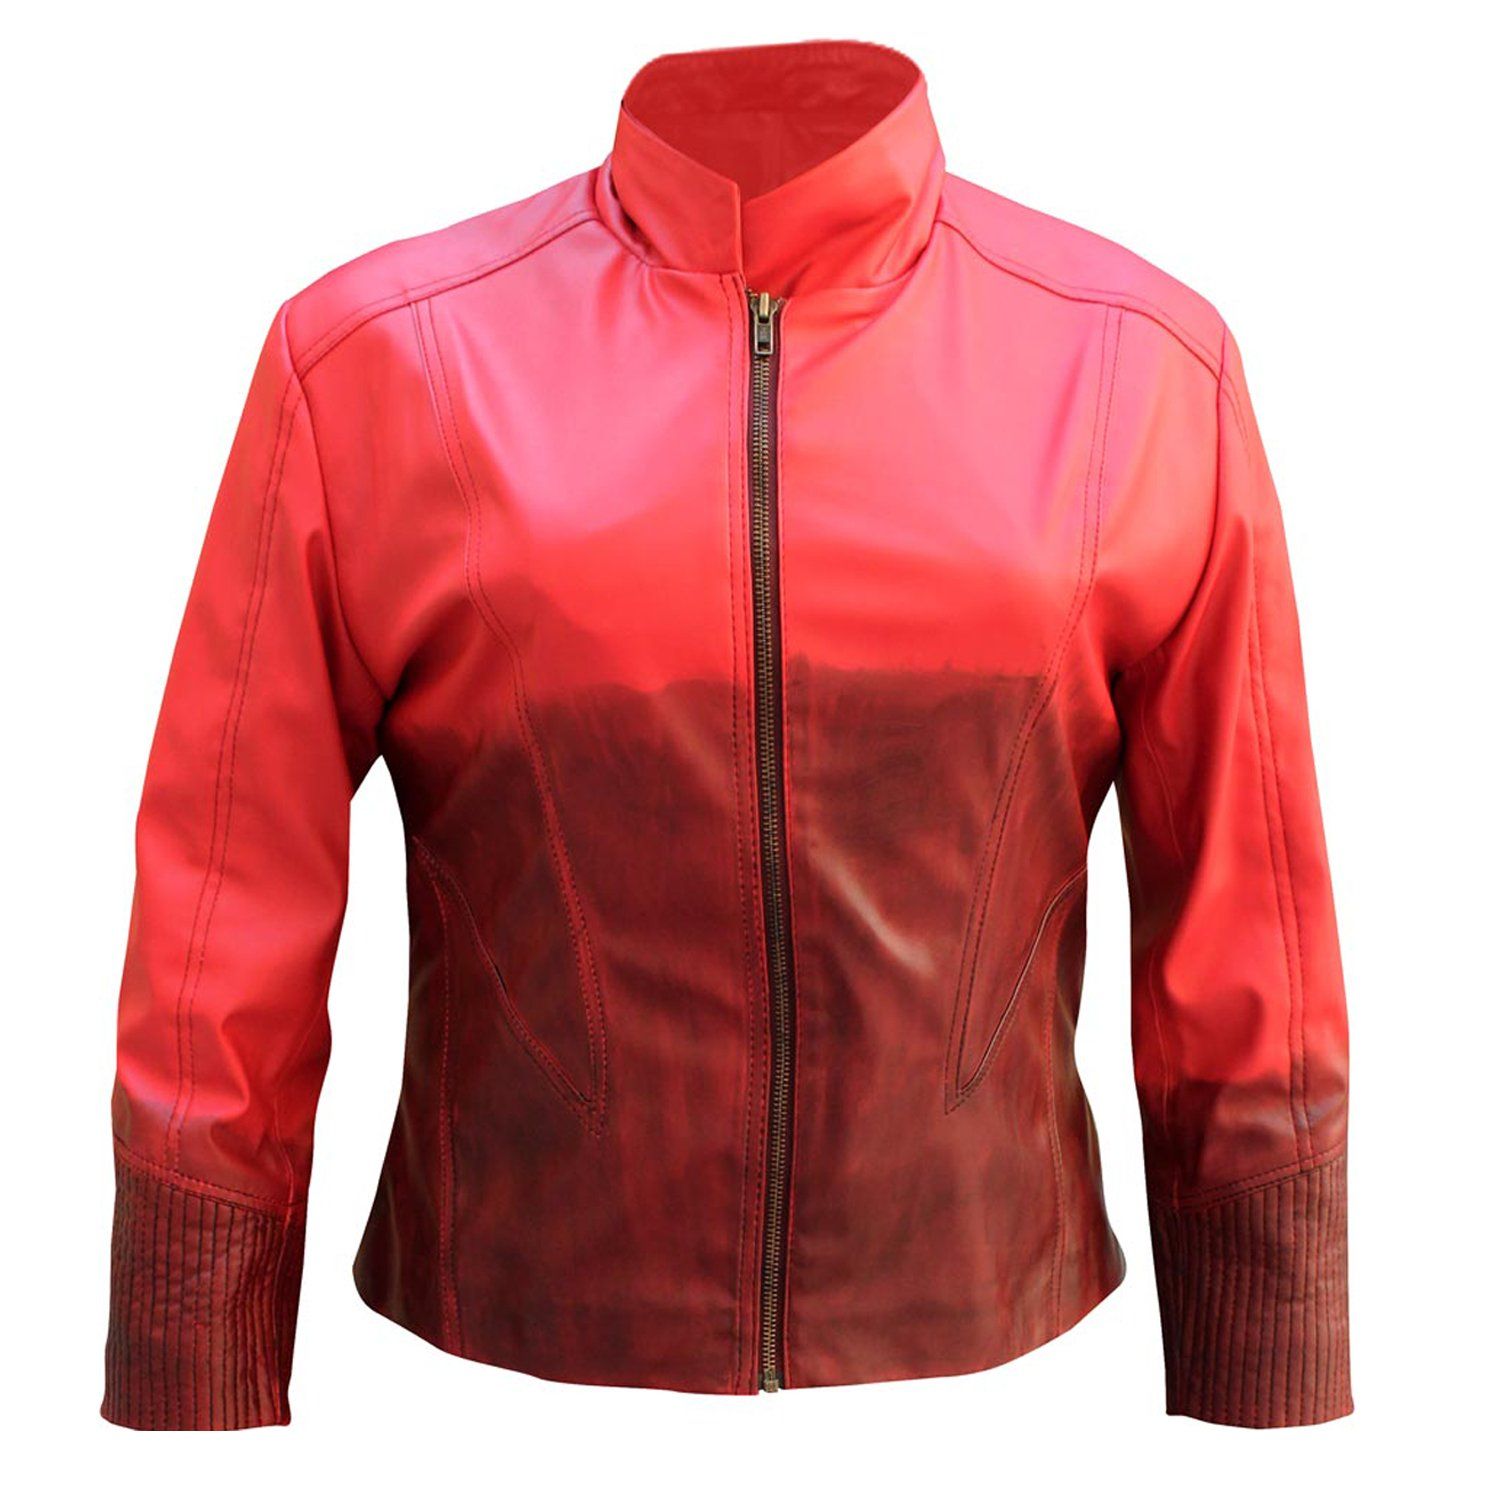 Scarlet Witch Jacket Avengers Age of Ultron Movie